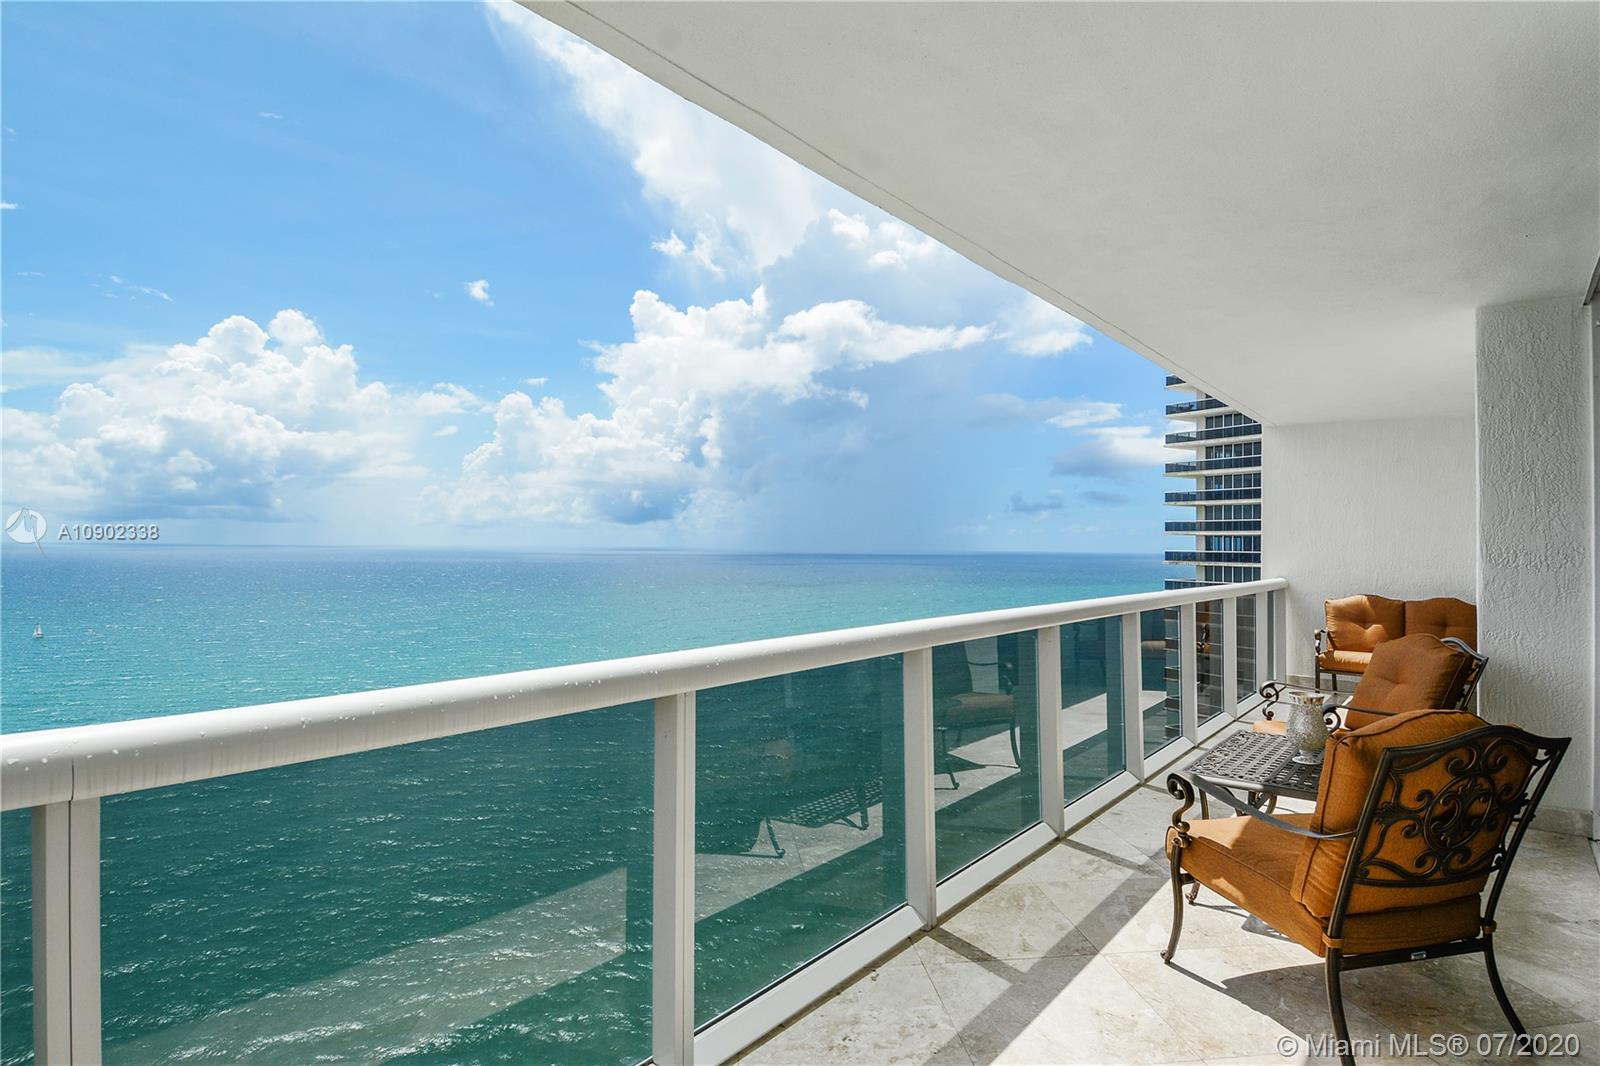 Spectacular Upper Penthouse On The 43Rd Floor Directly Facing The Ocean. Beachfront In The Fantastic Beach Club. Enter + Immediately Throughout See Direct Unobstructed Ocean Views To Take Your Breath Away. Just Redone, Furnished And Completed. Being Sold Turnkey! Split Spacious Floor Plan. Large Living Area With State Of The Art Open Gourmet Kitchen. Large Master Suite With Large Closet + Master Bath. Move In With Your Toothbrush - Fully Equipped - New New New! Directly On The Ocean W/ Beach Club Service - 5 Star Amenities, Heated Pool, Huge Spa, Gym. Near Everything - Walk To Shops, Restaurants, Houses Of Worship, Minutes To Int'l Airports!